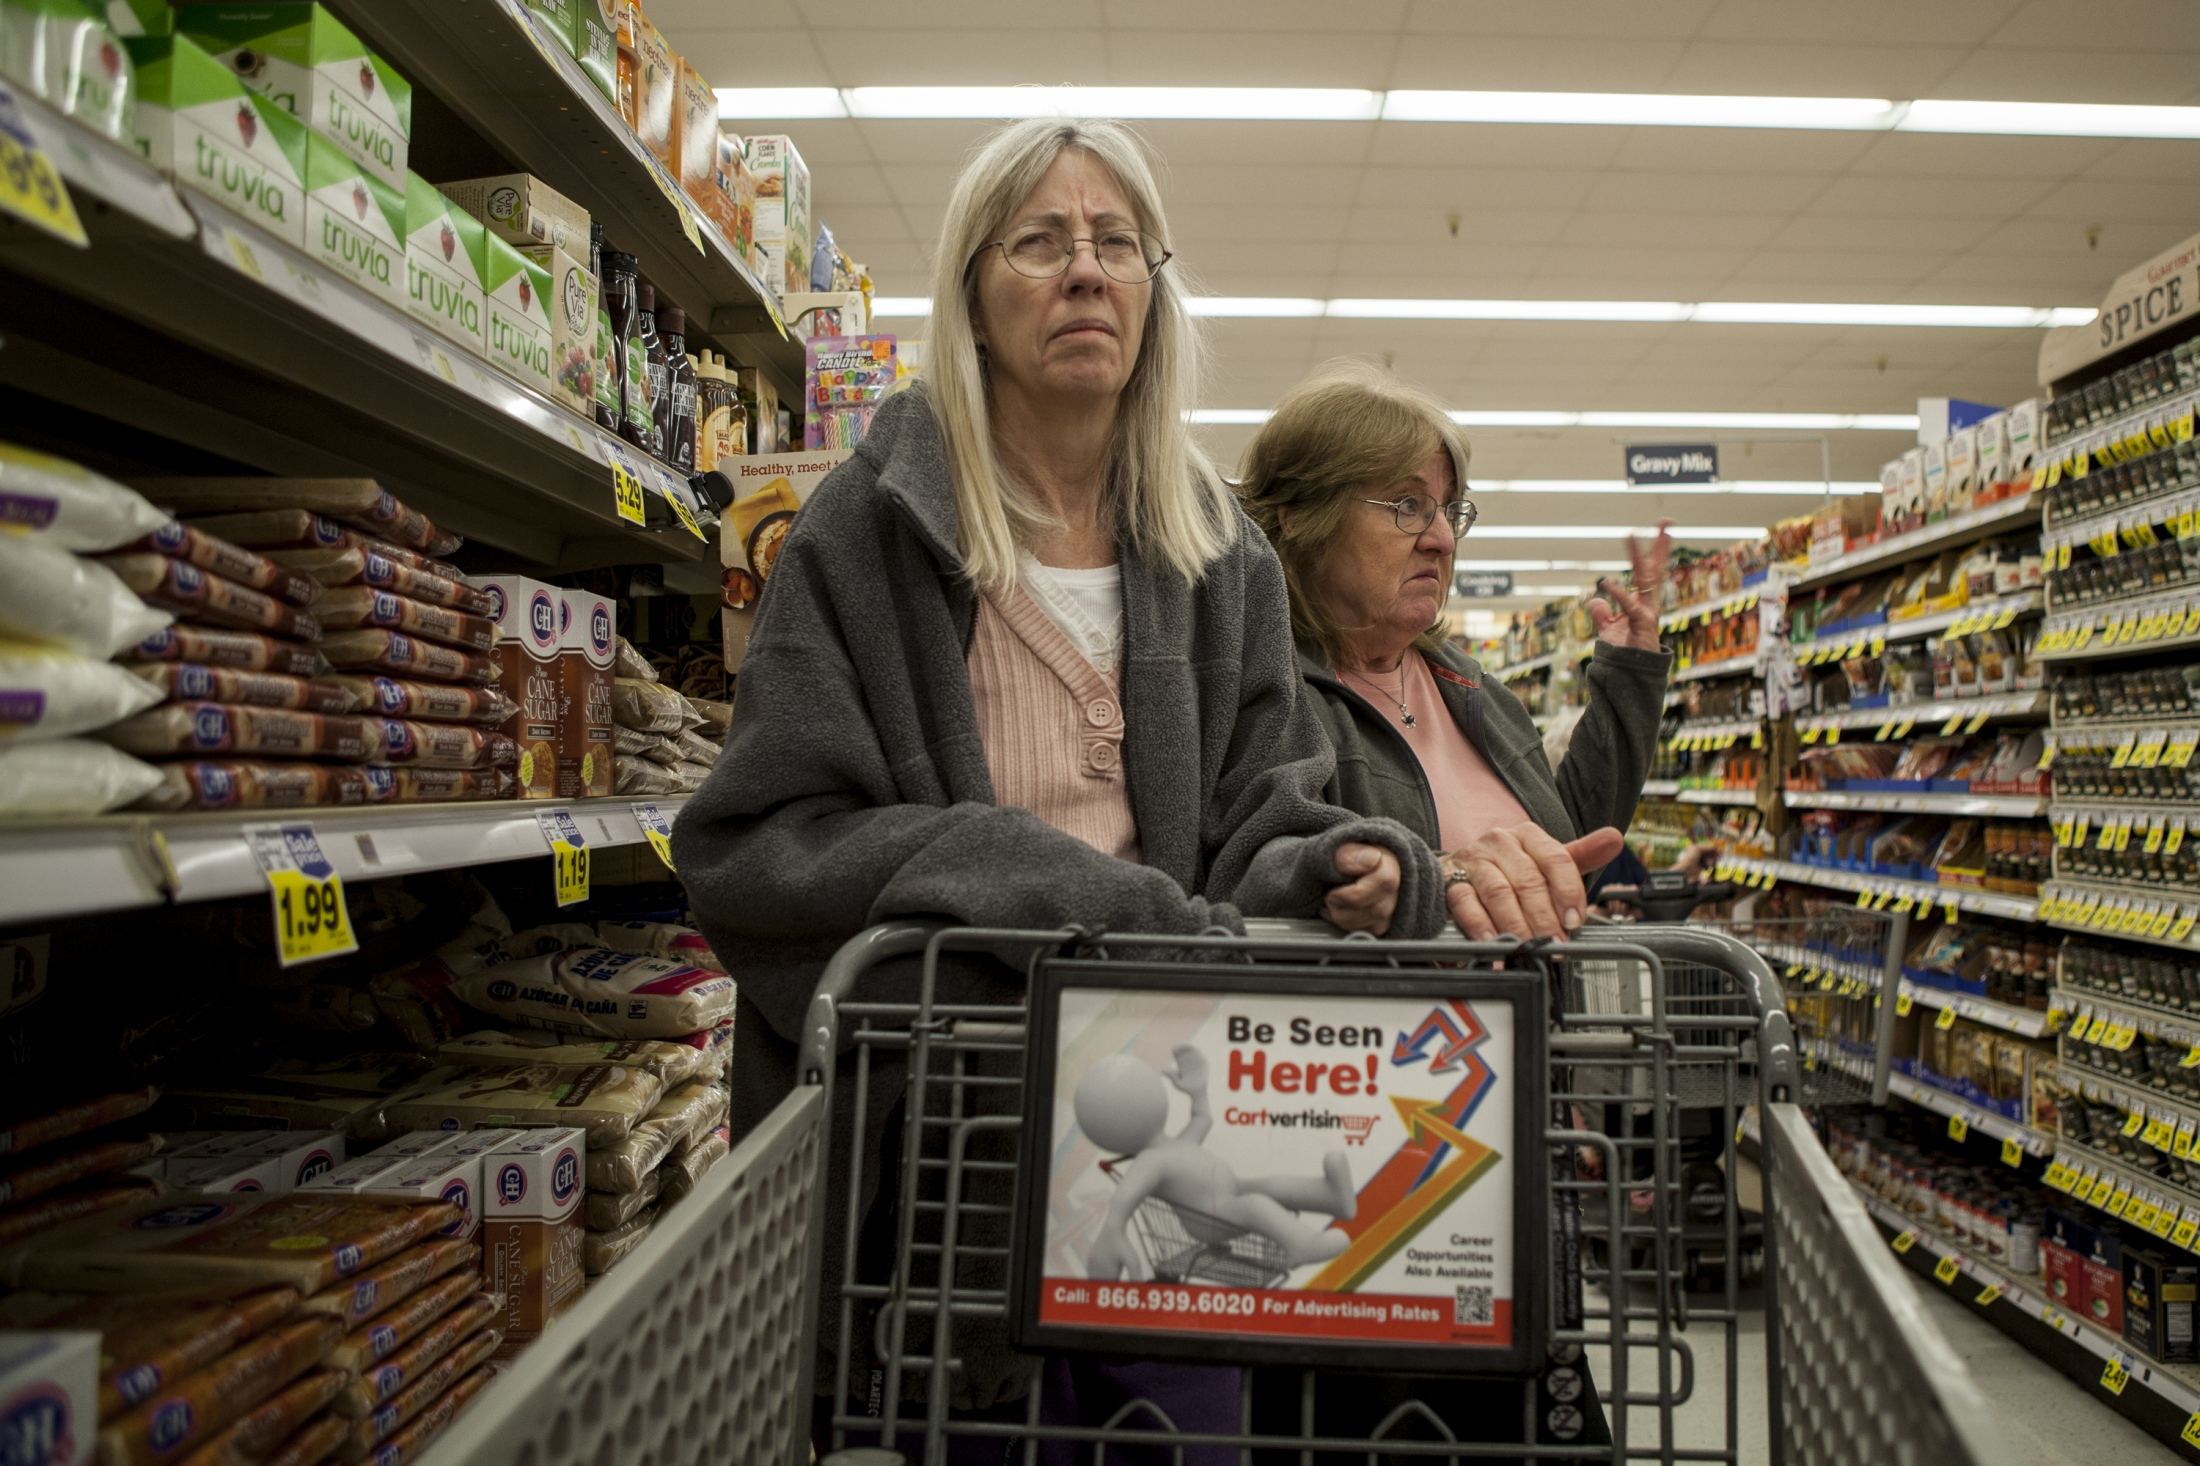 Nancy stares at the other people in the grocery store isle as her sister, Debbie Lundin, shops for food. Outings with Nancy were a regular routine until she became harder to handle in public settings. Often times, she will become very frustrated or wander off talking to strangers angrily.